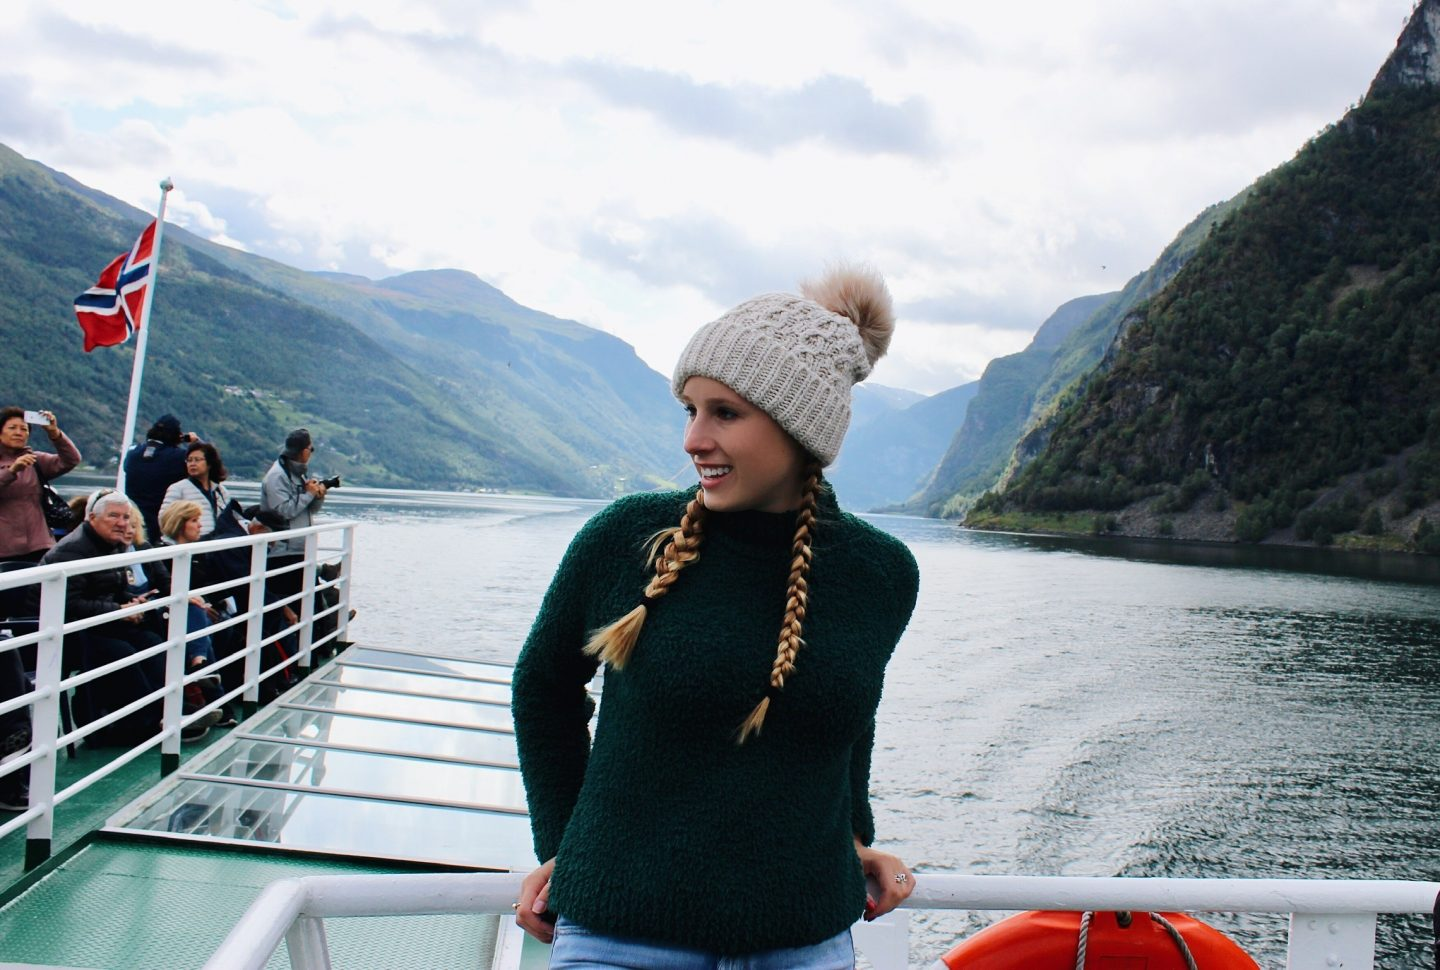 Fjord cruise in Norway with Norway in a Nutshell!